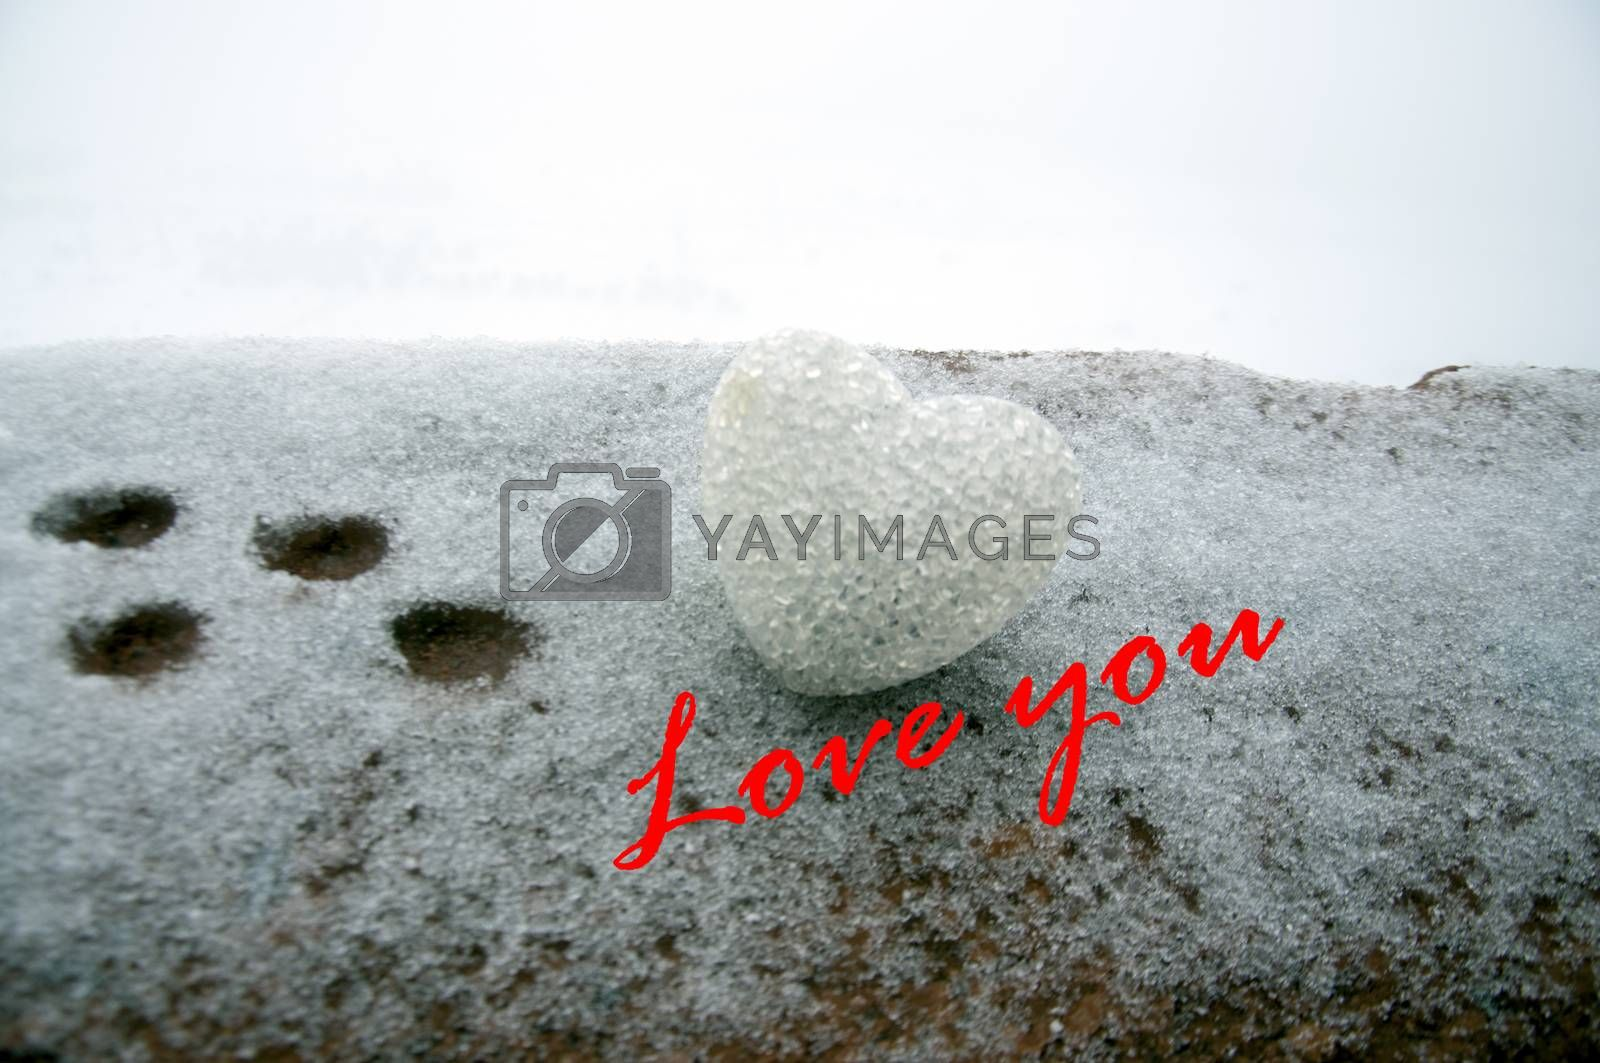 abstract glass heart on snow at night. Card for a Valentine's day. Forgive me, miss you love you words red or greyscale colored. selective focus. Foot paths on snow